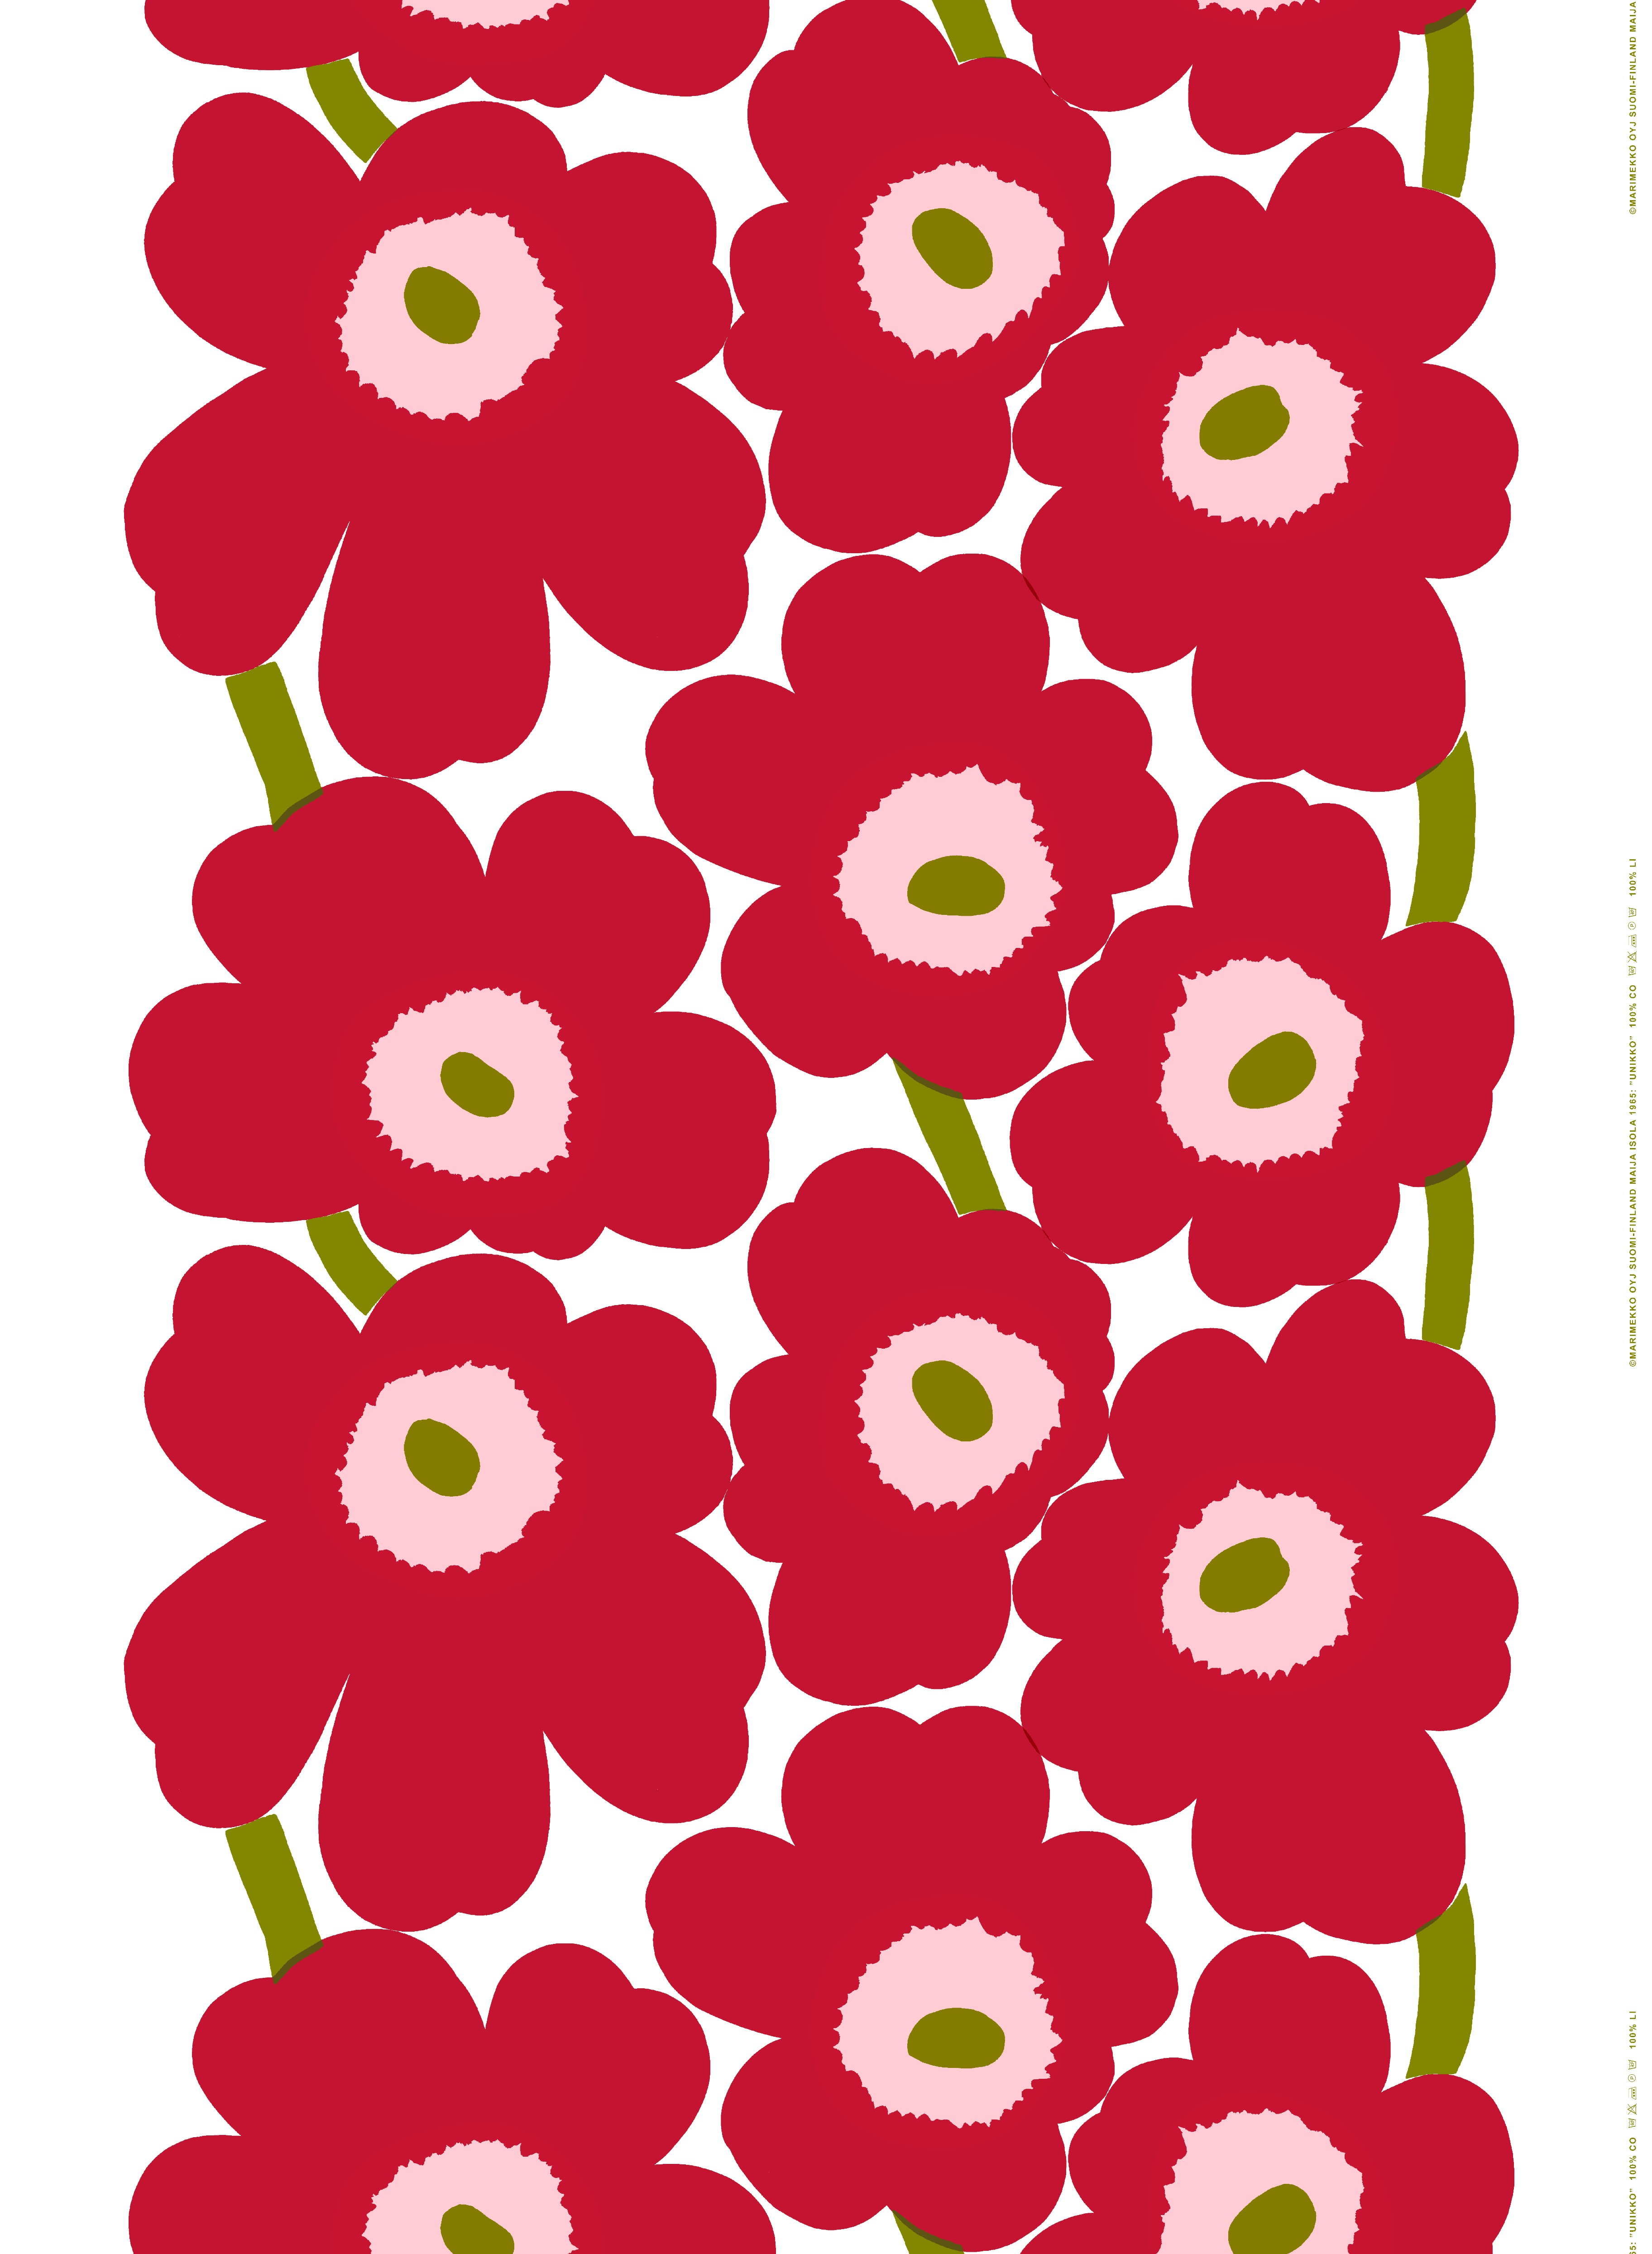 That Flower Design On Your Shower Curtain It Just Turned